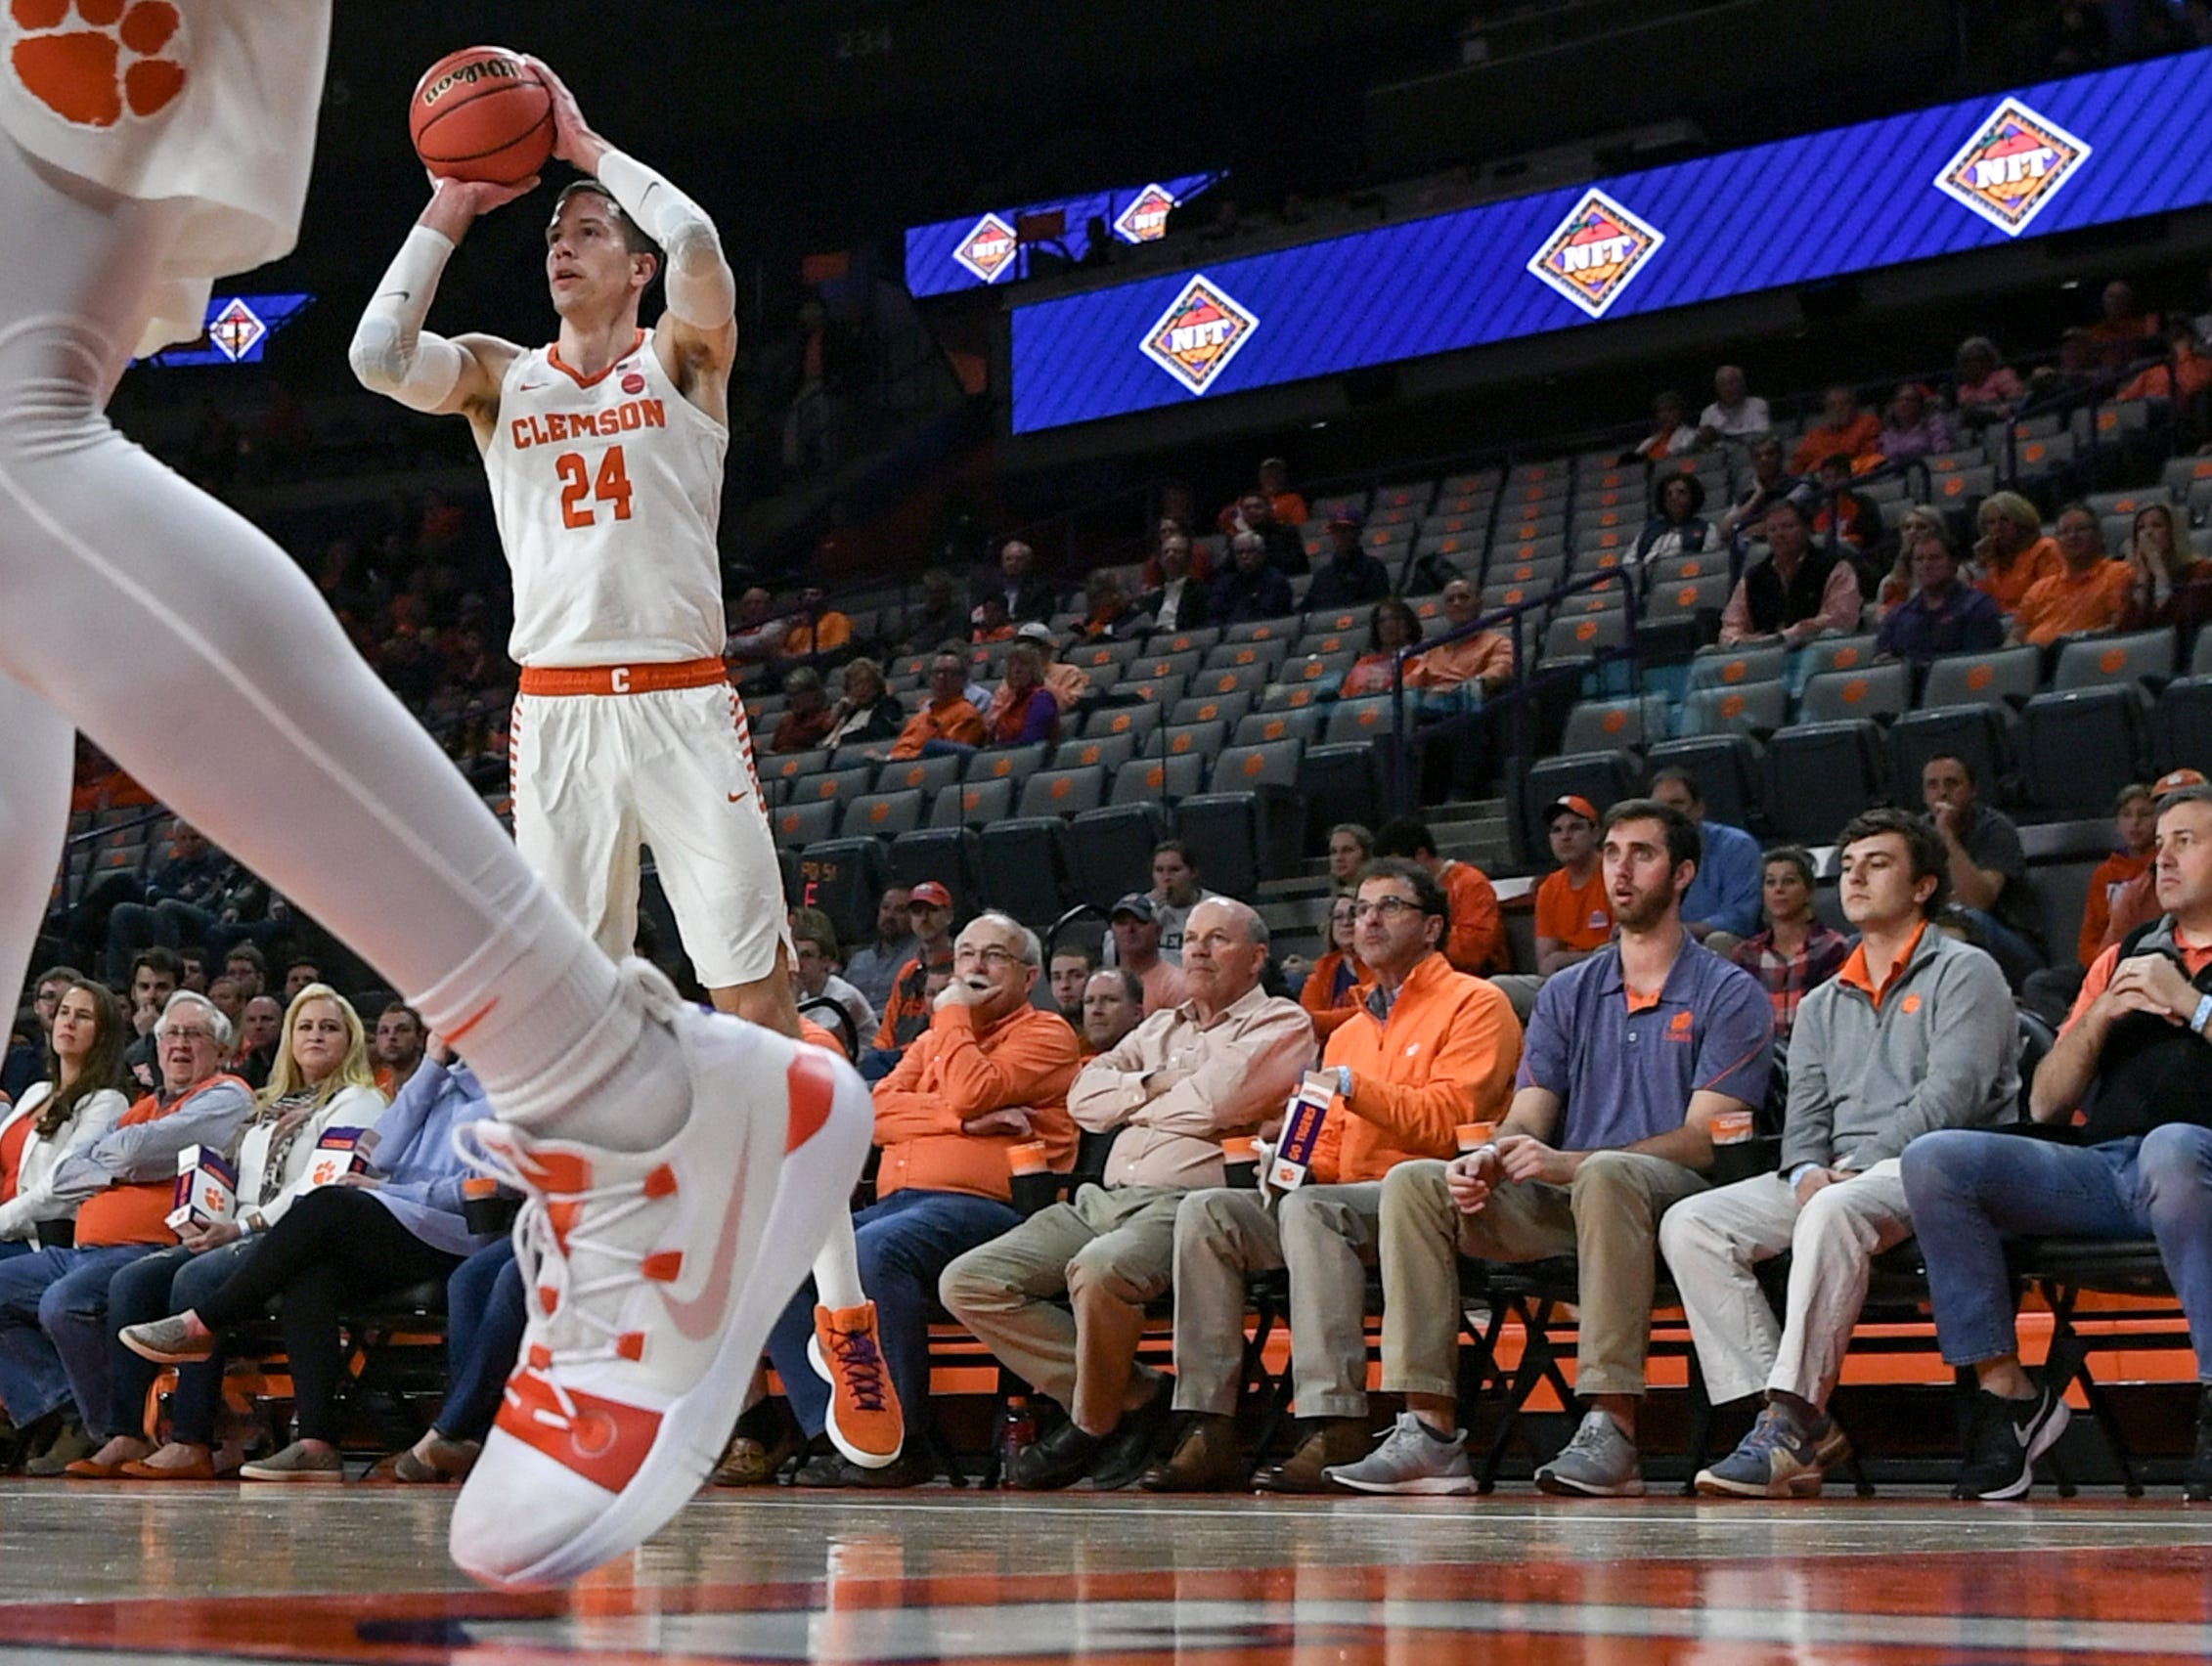 Clemson forward David Skara (24) shoots a three-pointer against Wright State during the first half of the NIT at Littlejohn Coliseum in Clemson Tuesday, March 19, 2019.